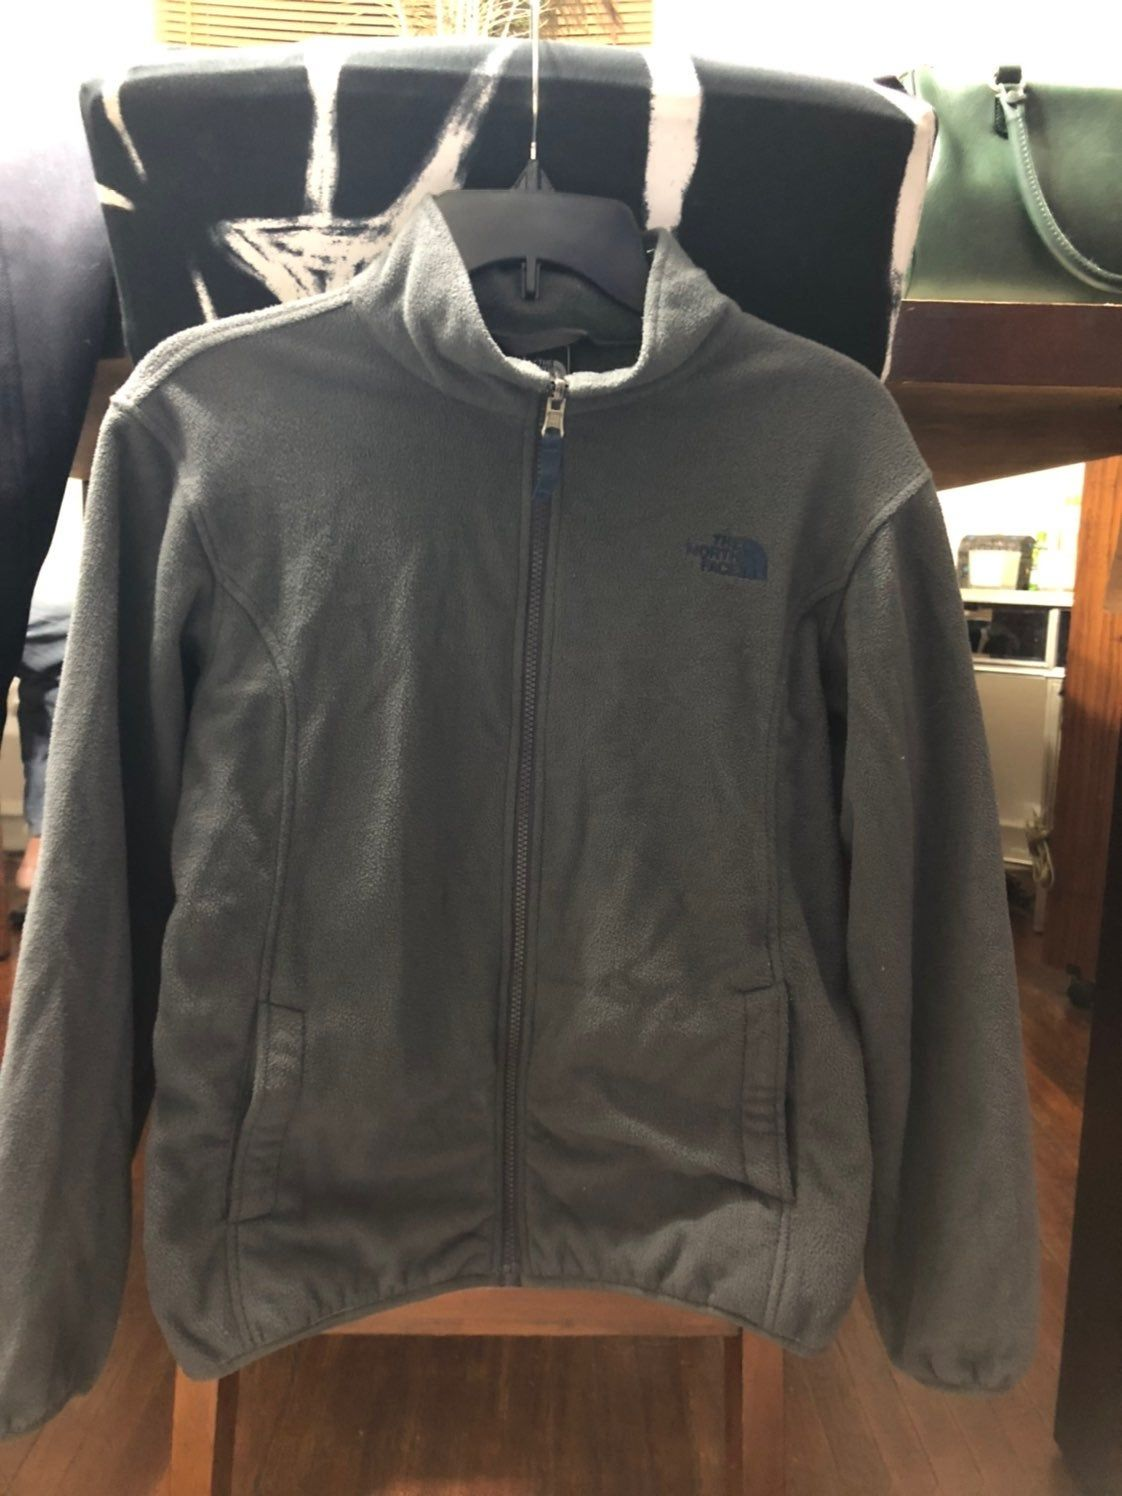 North Face Jacket Boys Size Large Gray Color W Blue Accent North Face Jacket Boys Jacket Jackets [ 1496 x 1122 Pixel ]